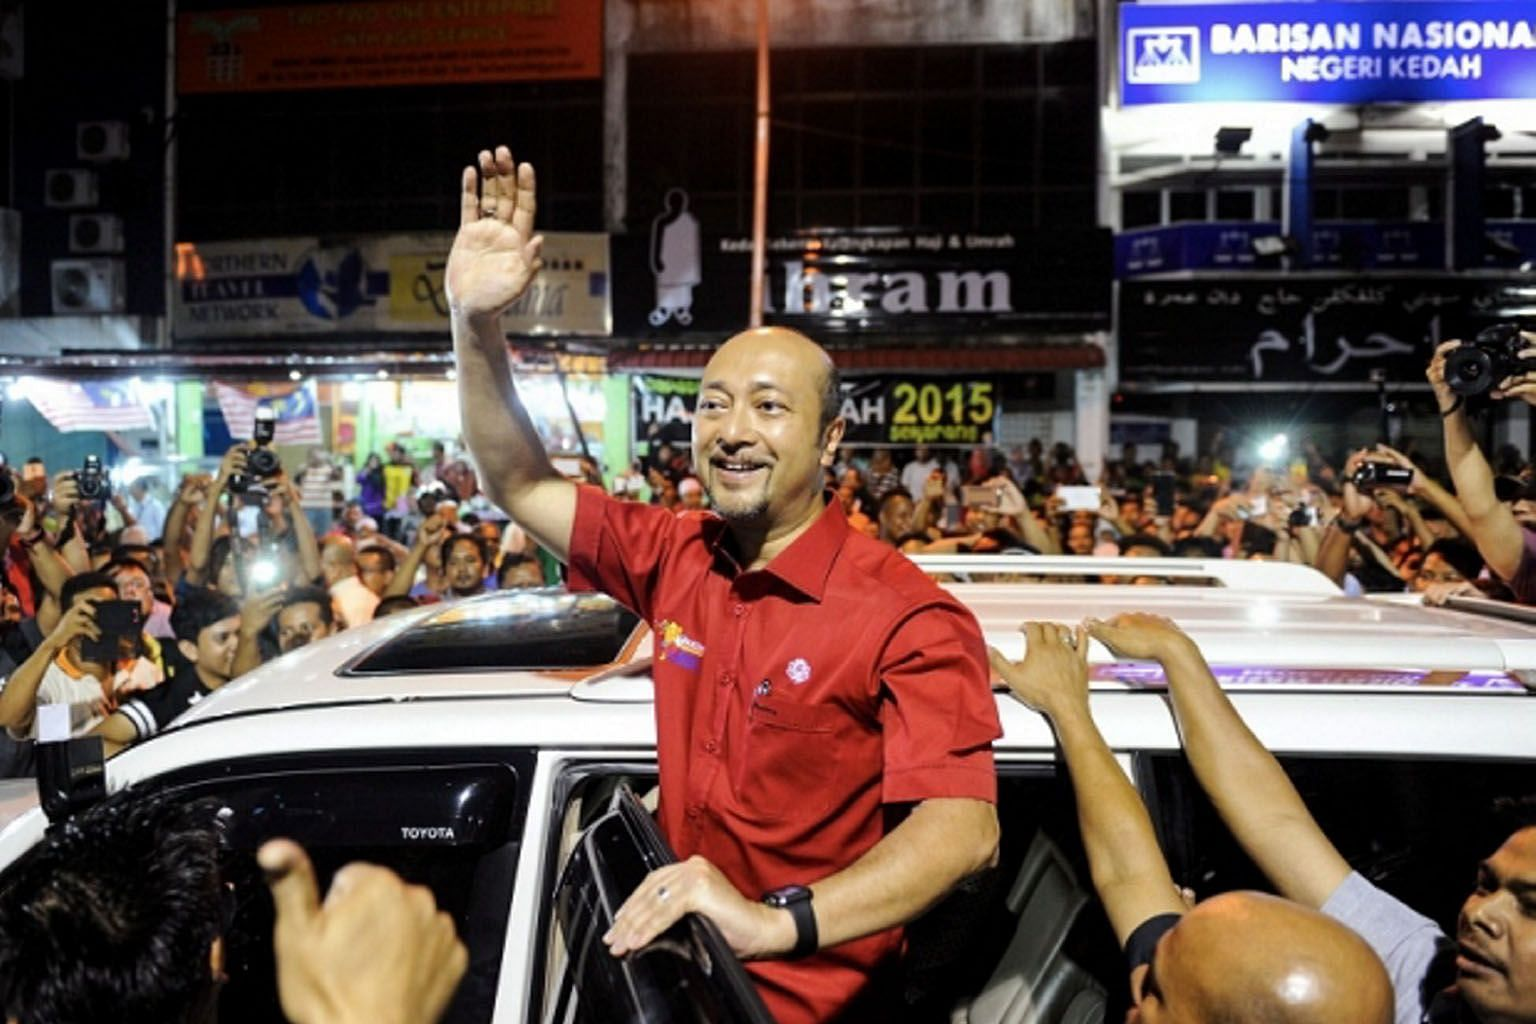 Mr Mukhriz being greeted by supporters at the Kedah Umno headquarters last month. The question now is not whether he will quit, but when he will go. He is adamant about staying on, saying the people are with him.